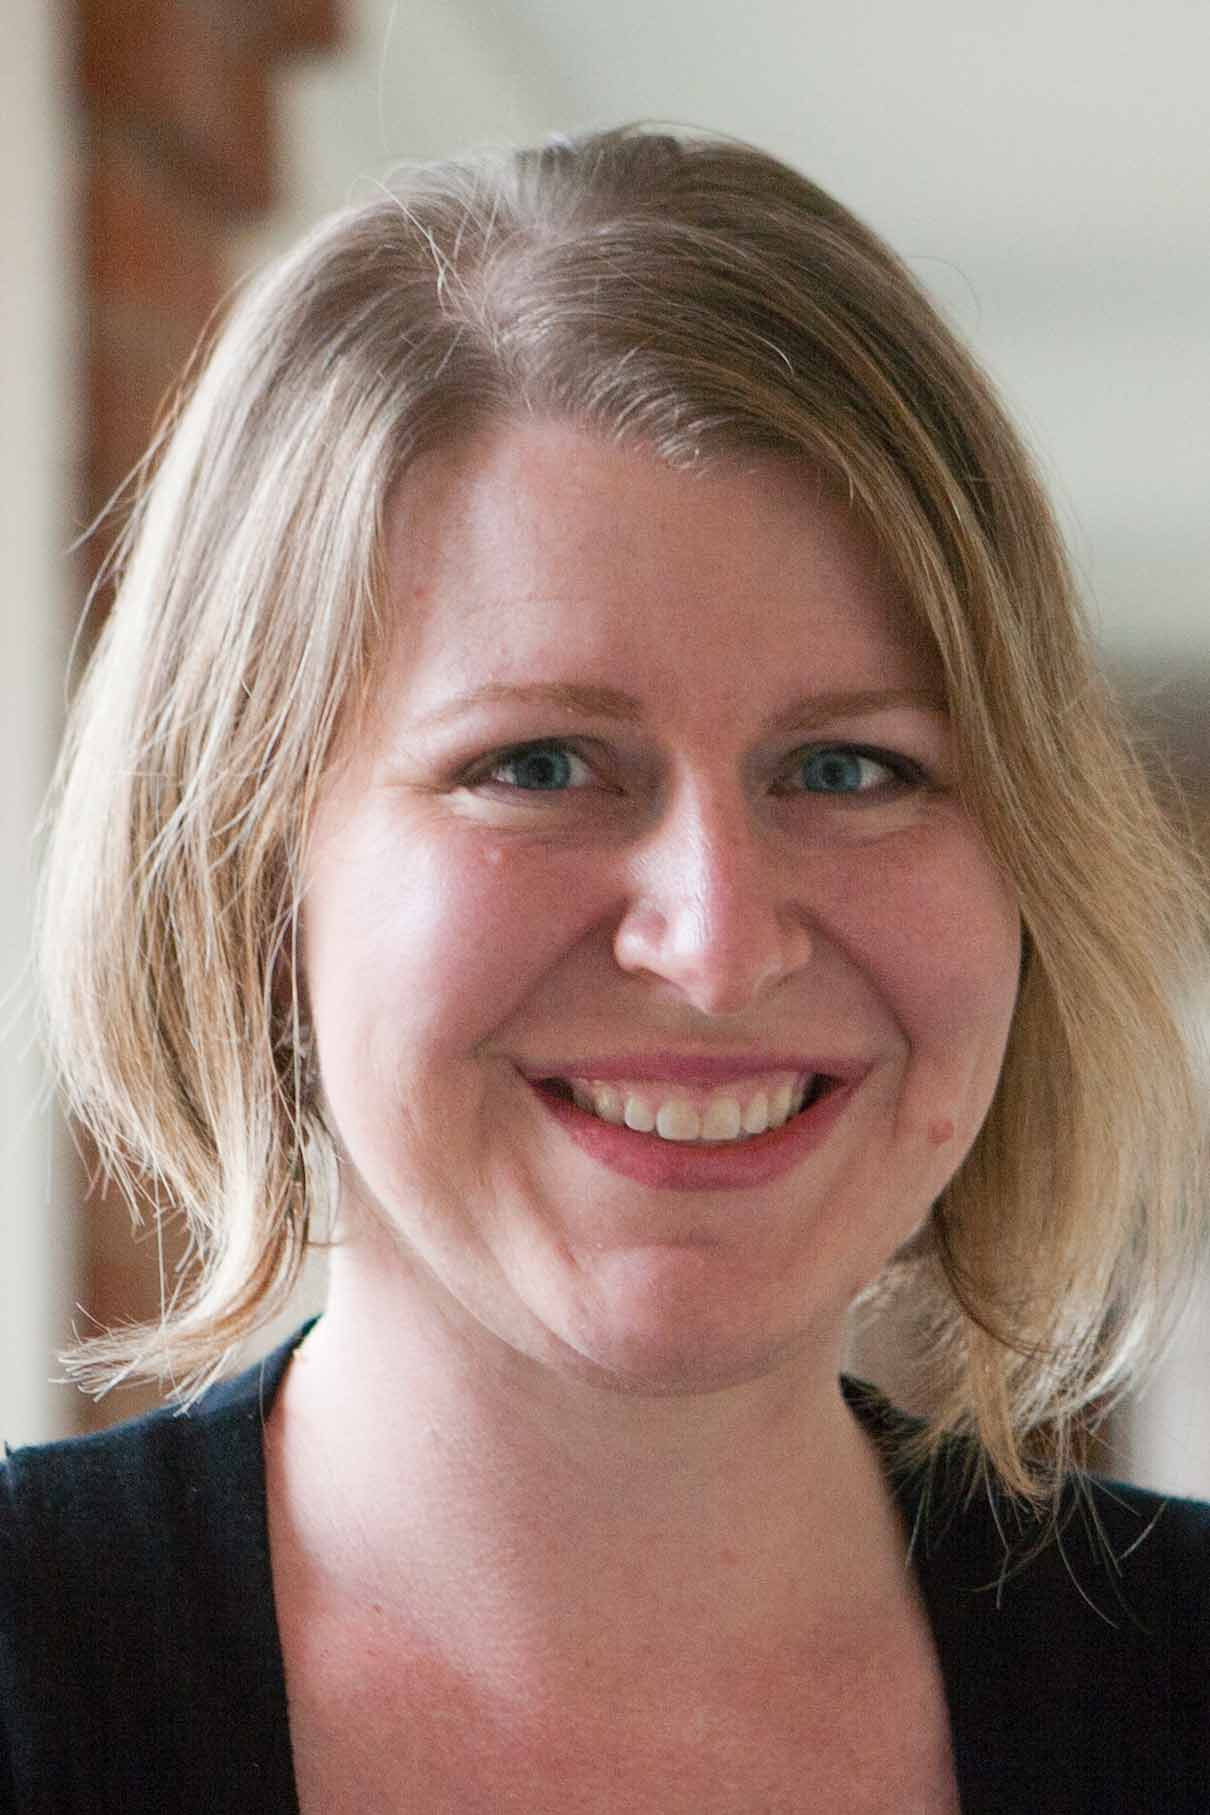 """Nicole Hemmer is an assistant professor of presidential studies at UVA's Miller Center and author of """"Messengers of the Right: Conservative Media and the Transformation of American Politics."""""""